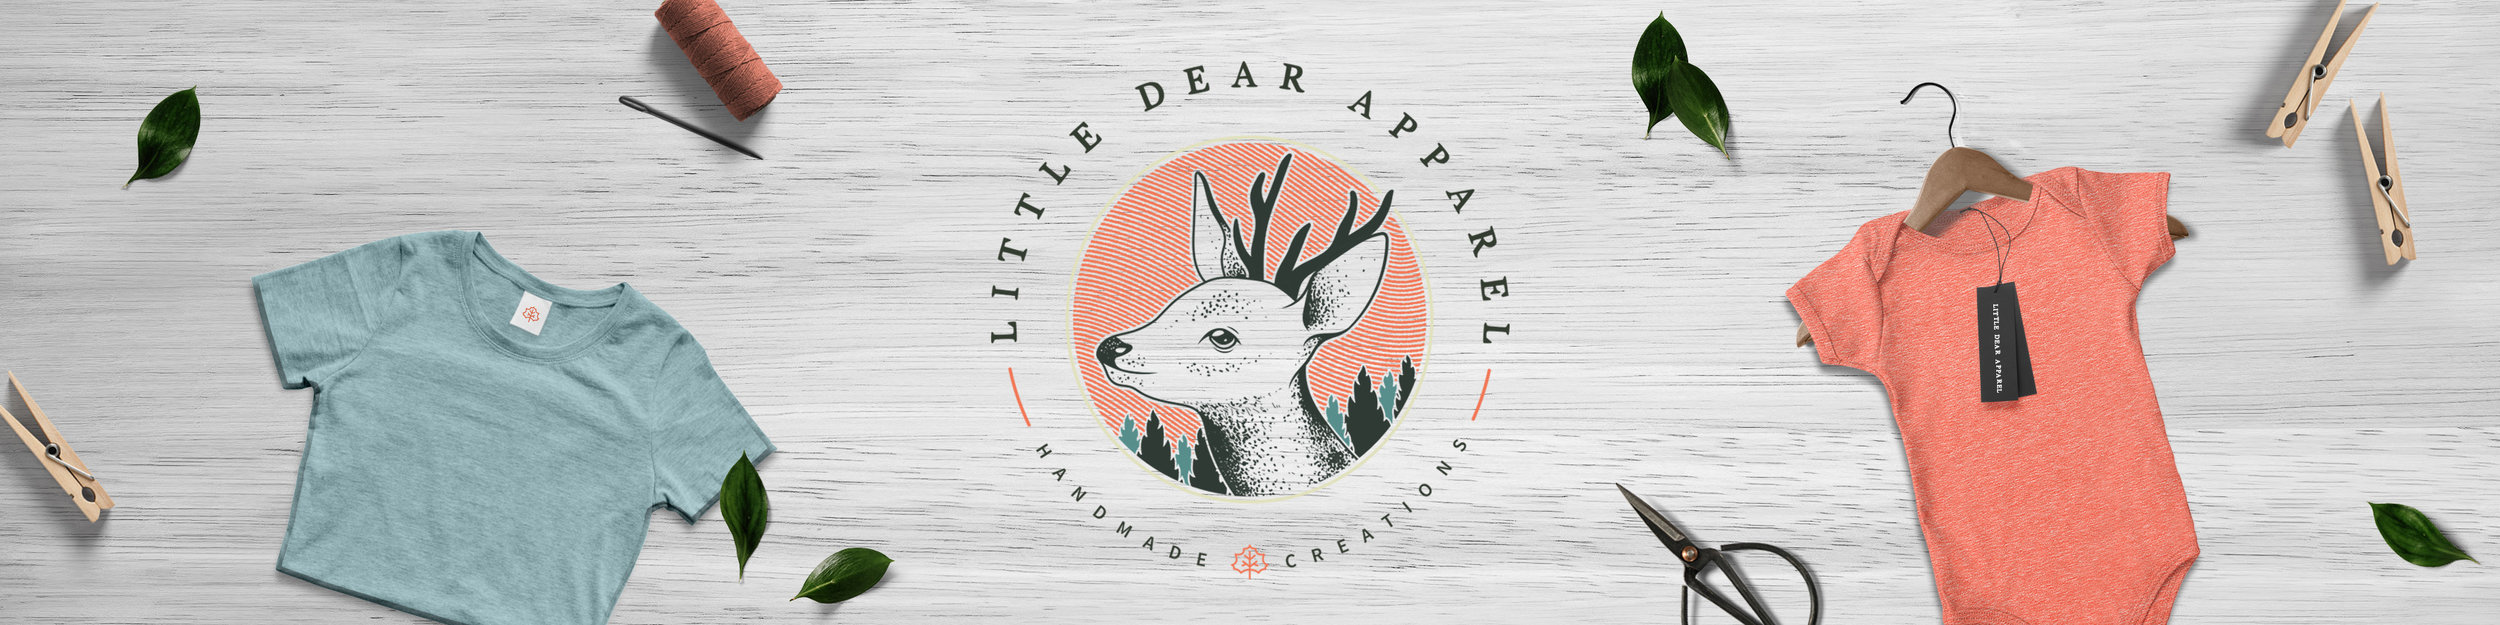 little-dear-apparel-winnipeg-branding-design-clover-and-crow